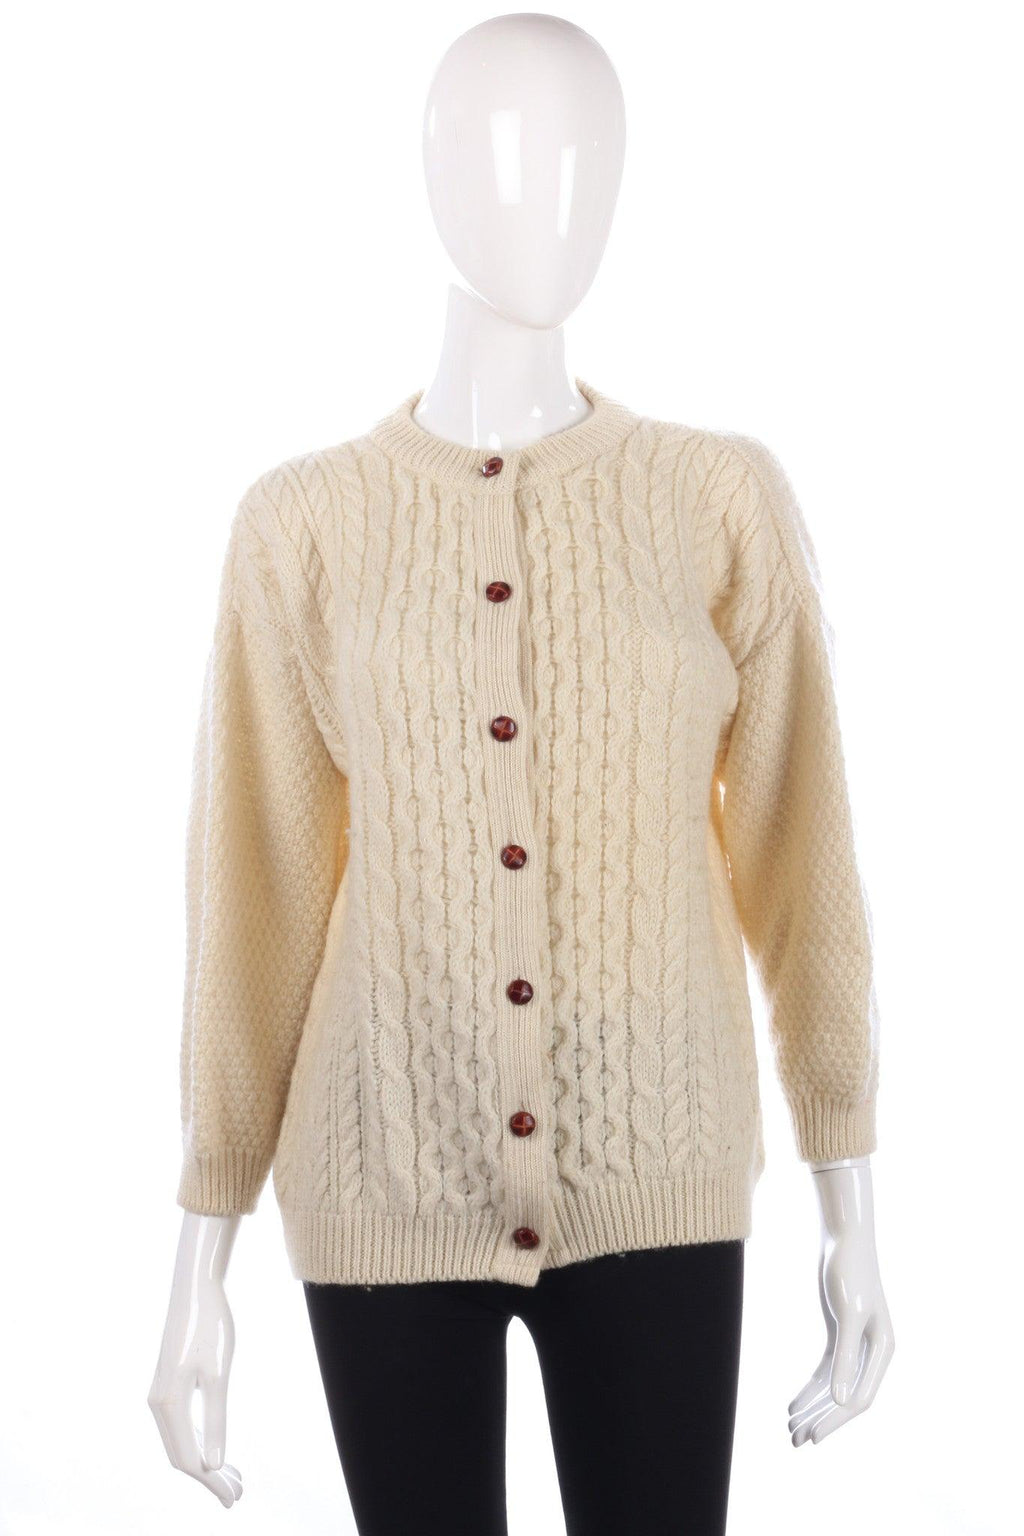 Highland Home Industries knitted cardigan  size 14/16